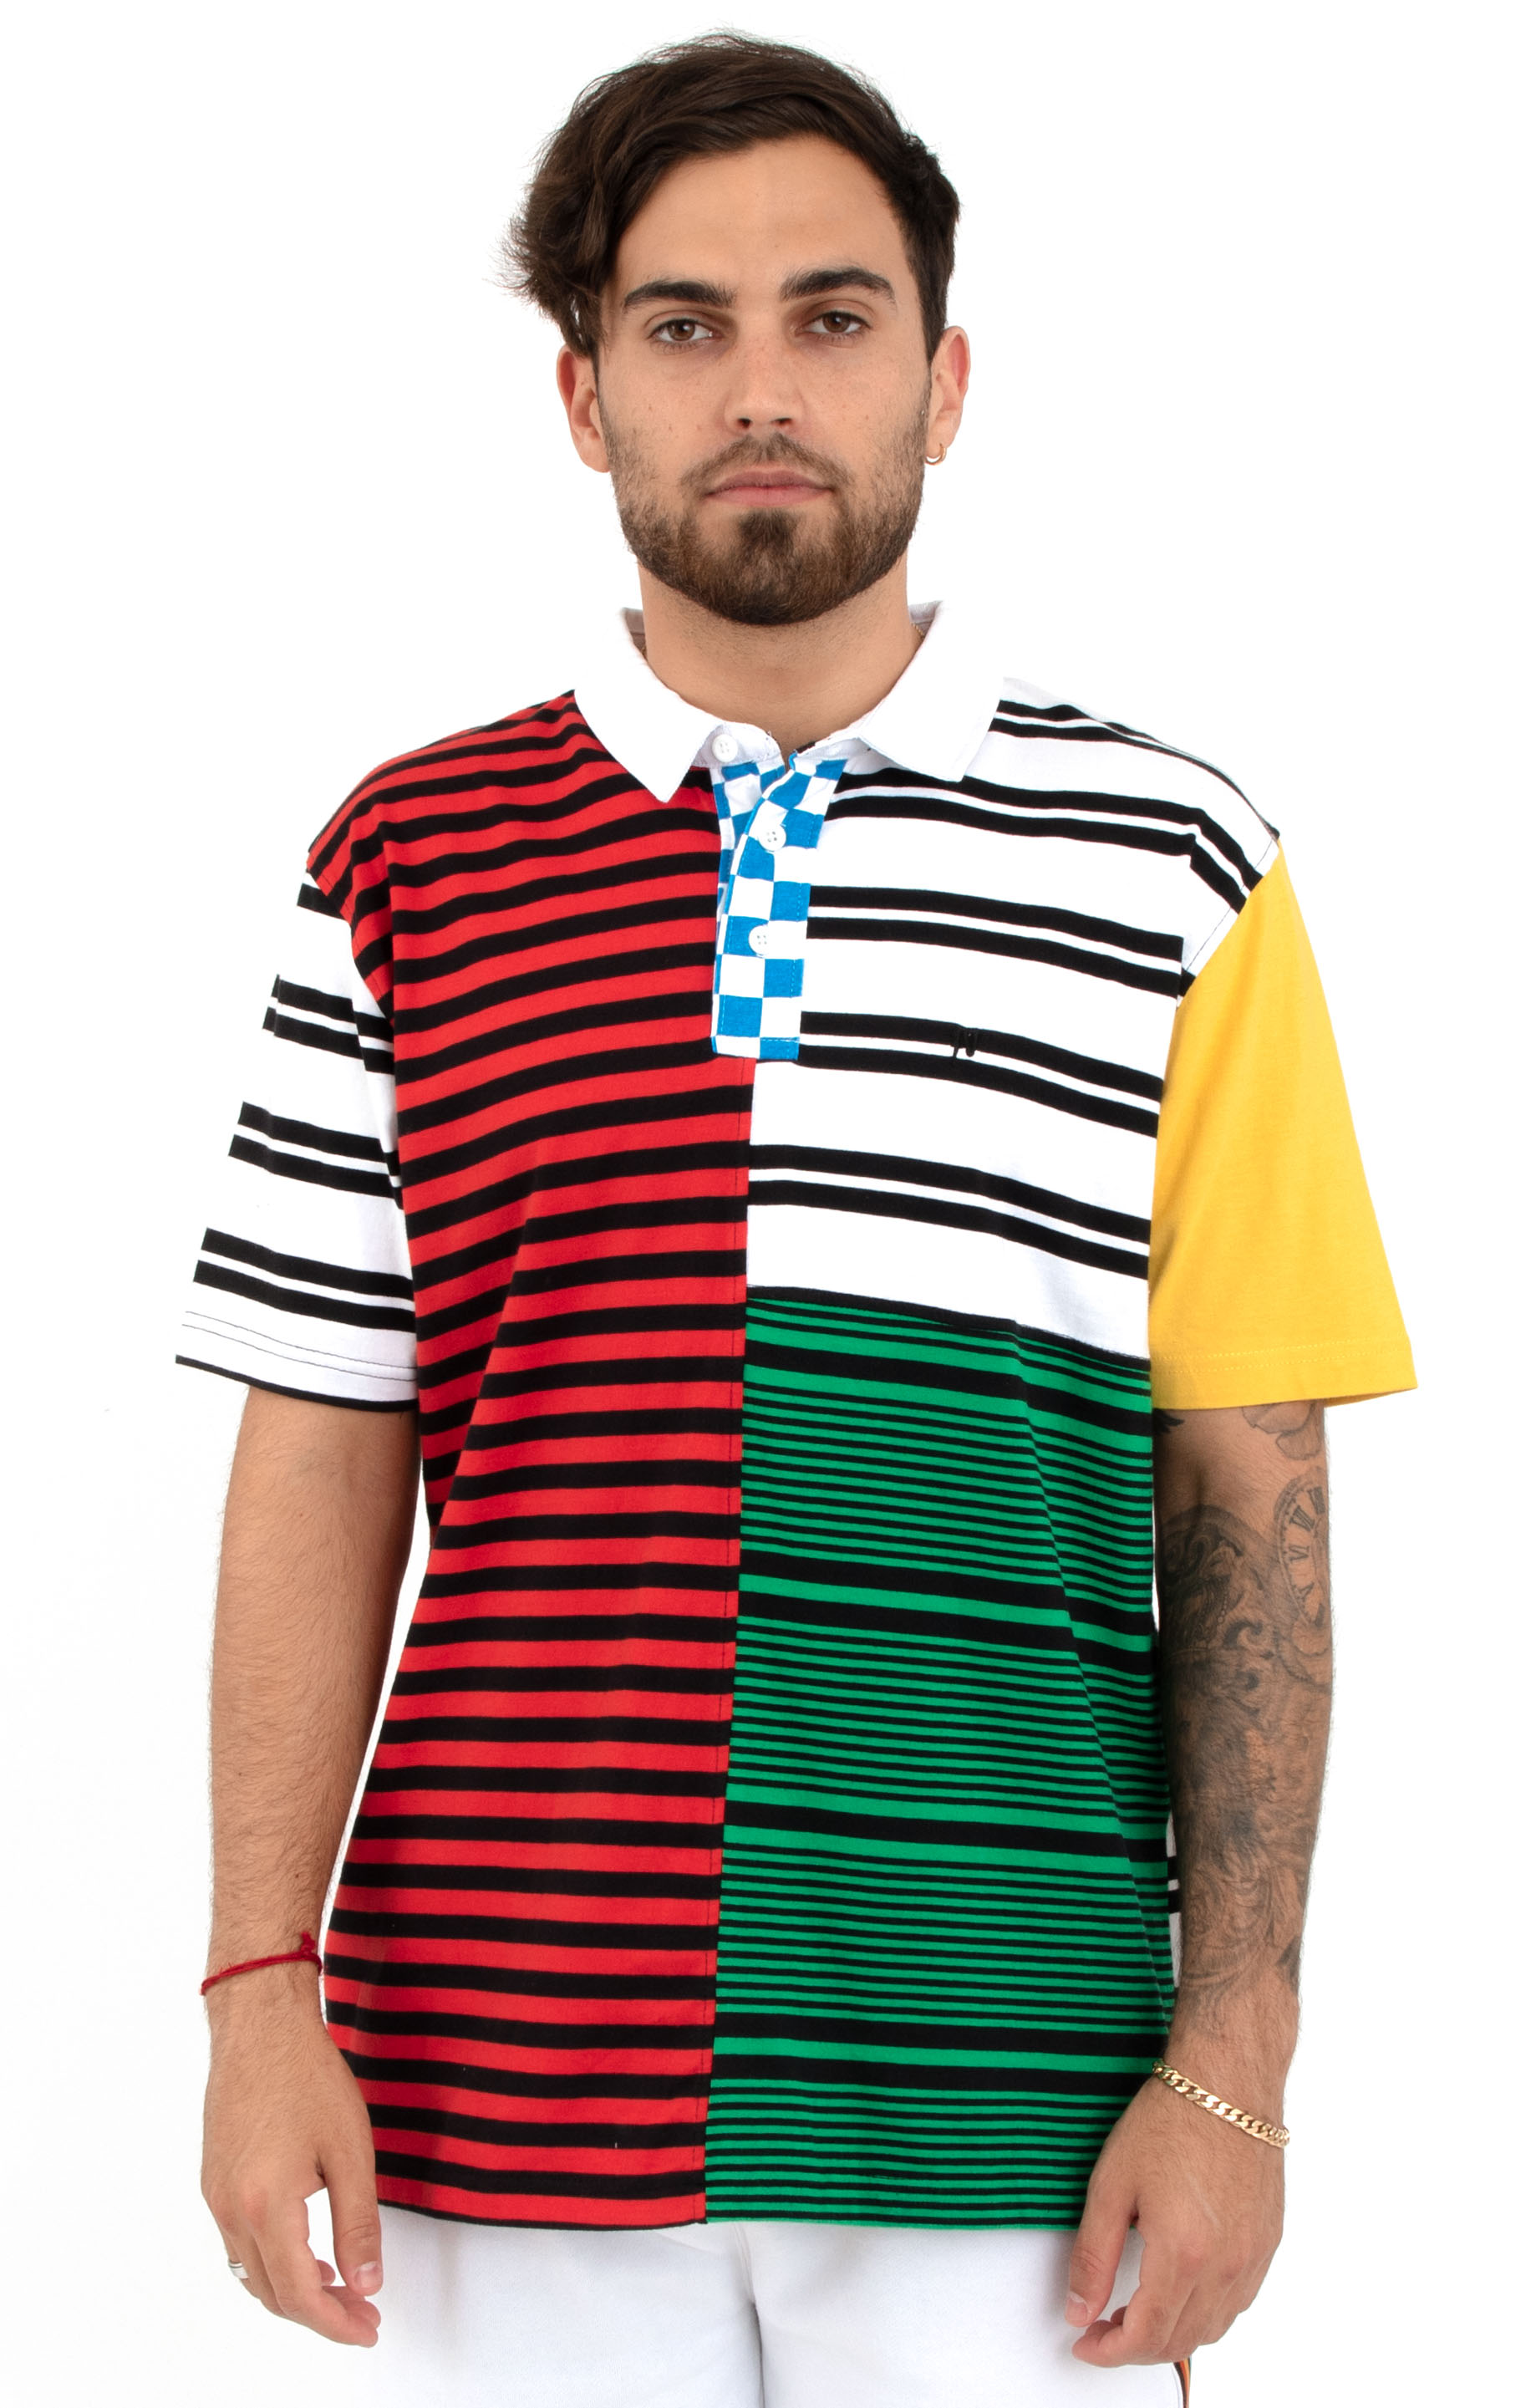 10 Deep, Many Wars S/S Rugby Shirt - Multi